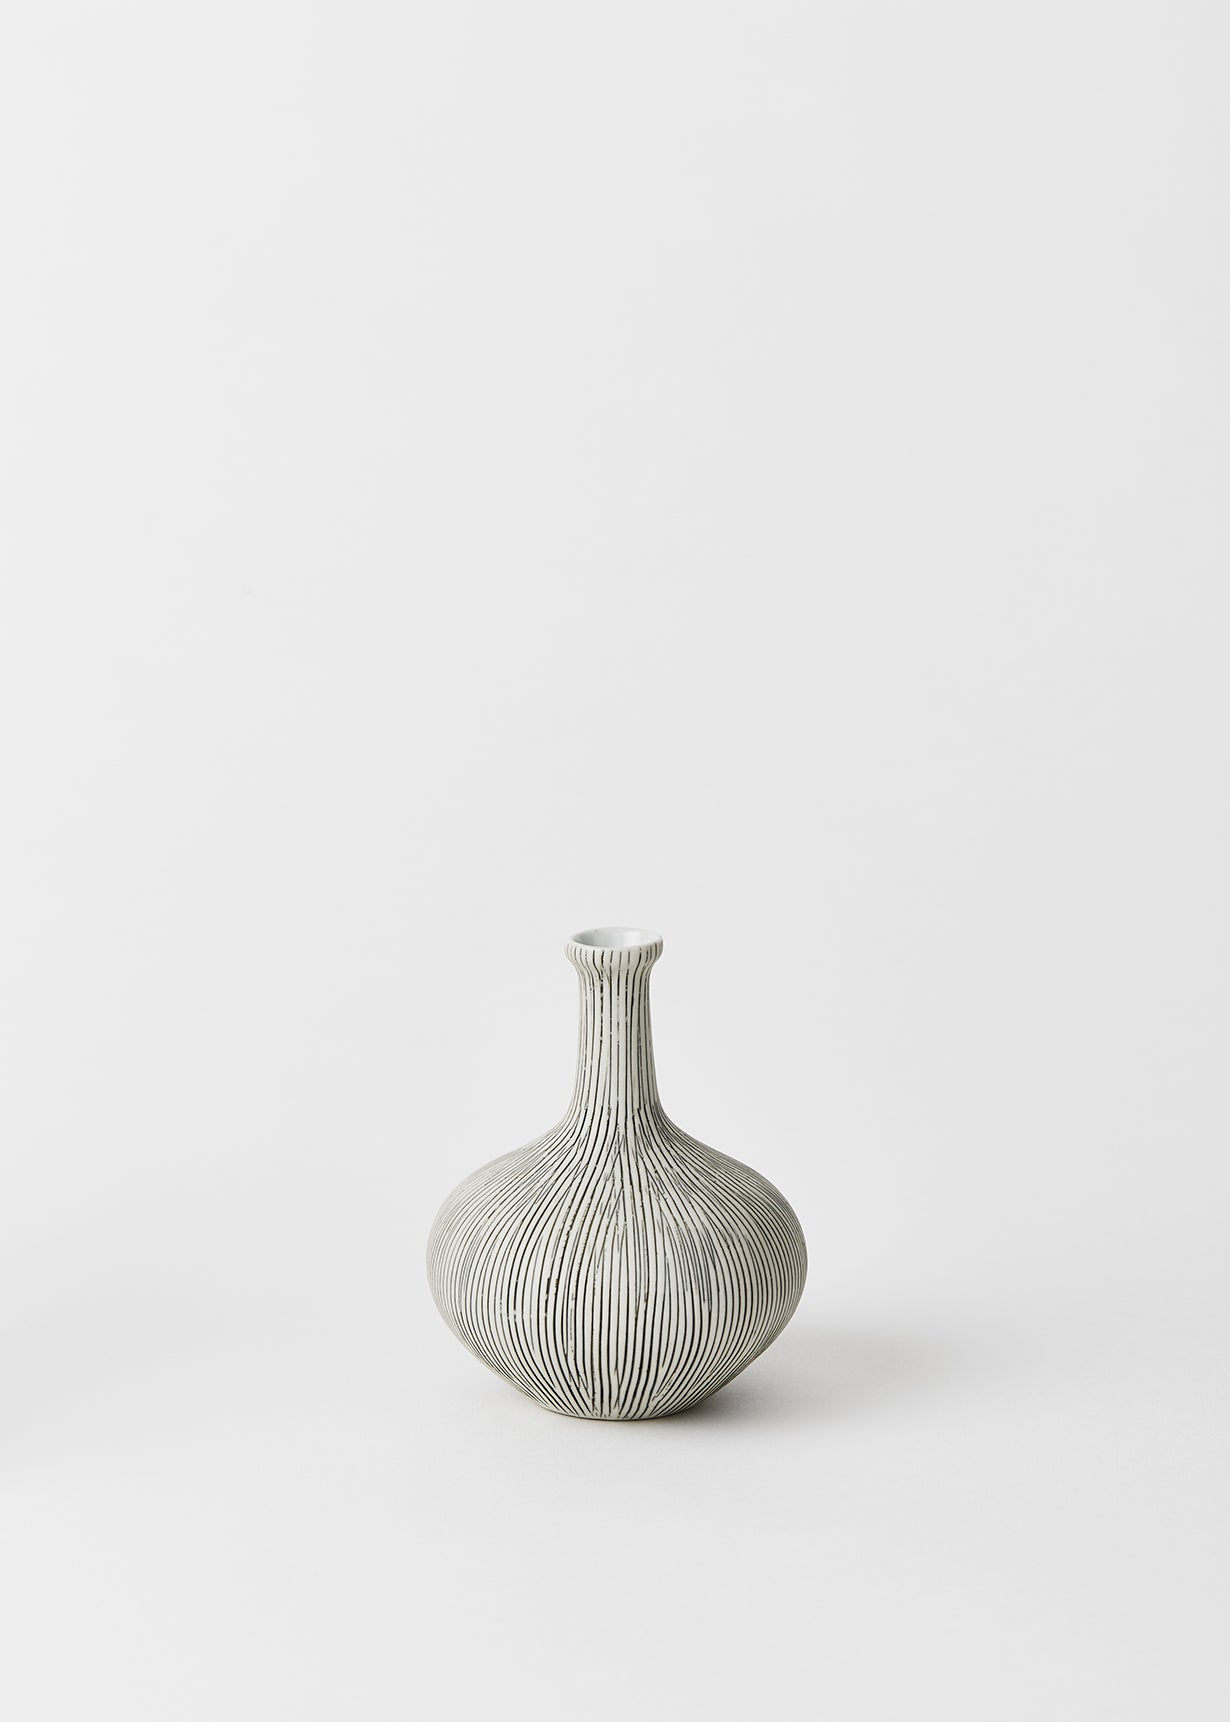 athen grey striped bud vase